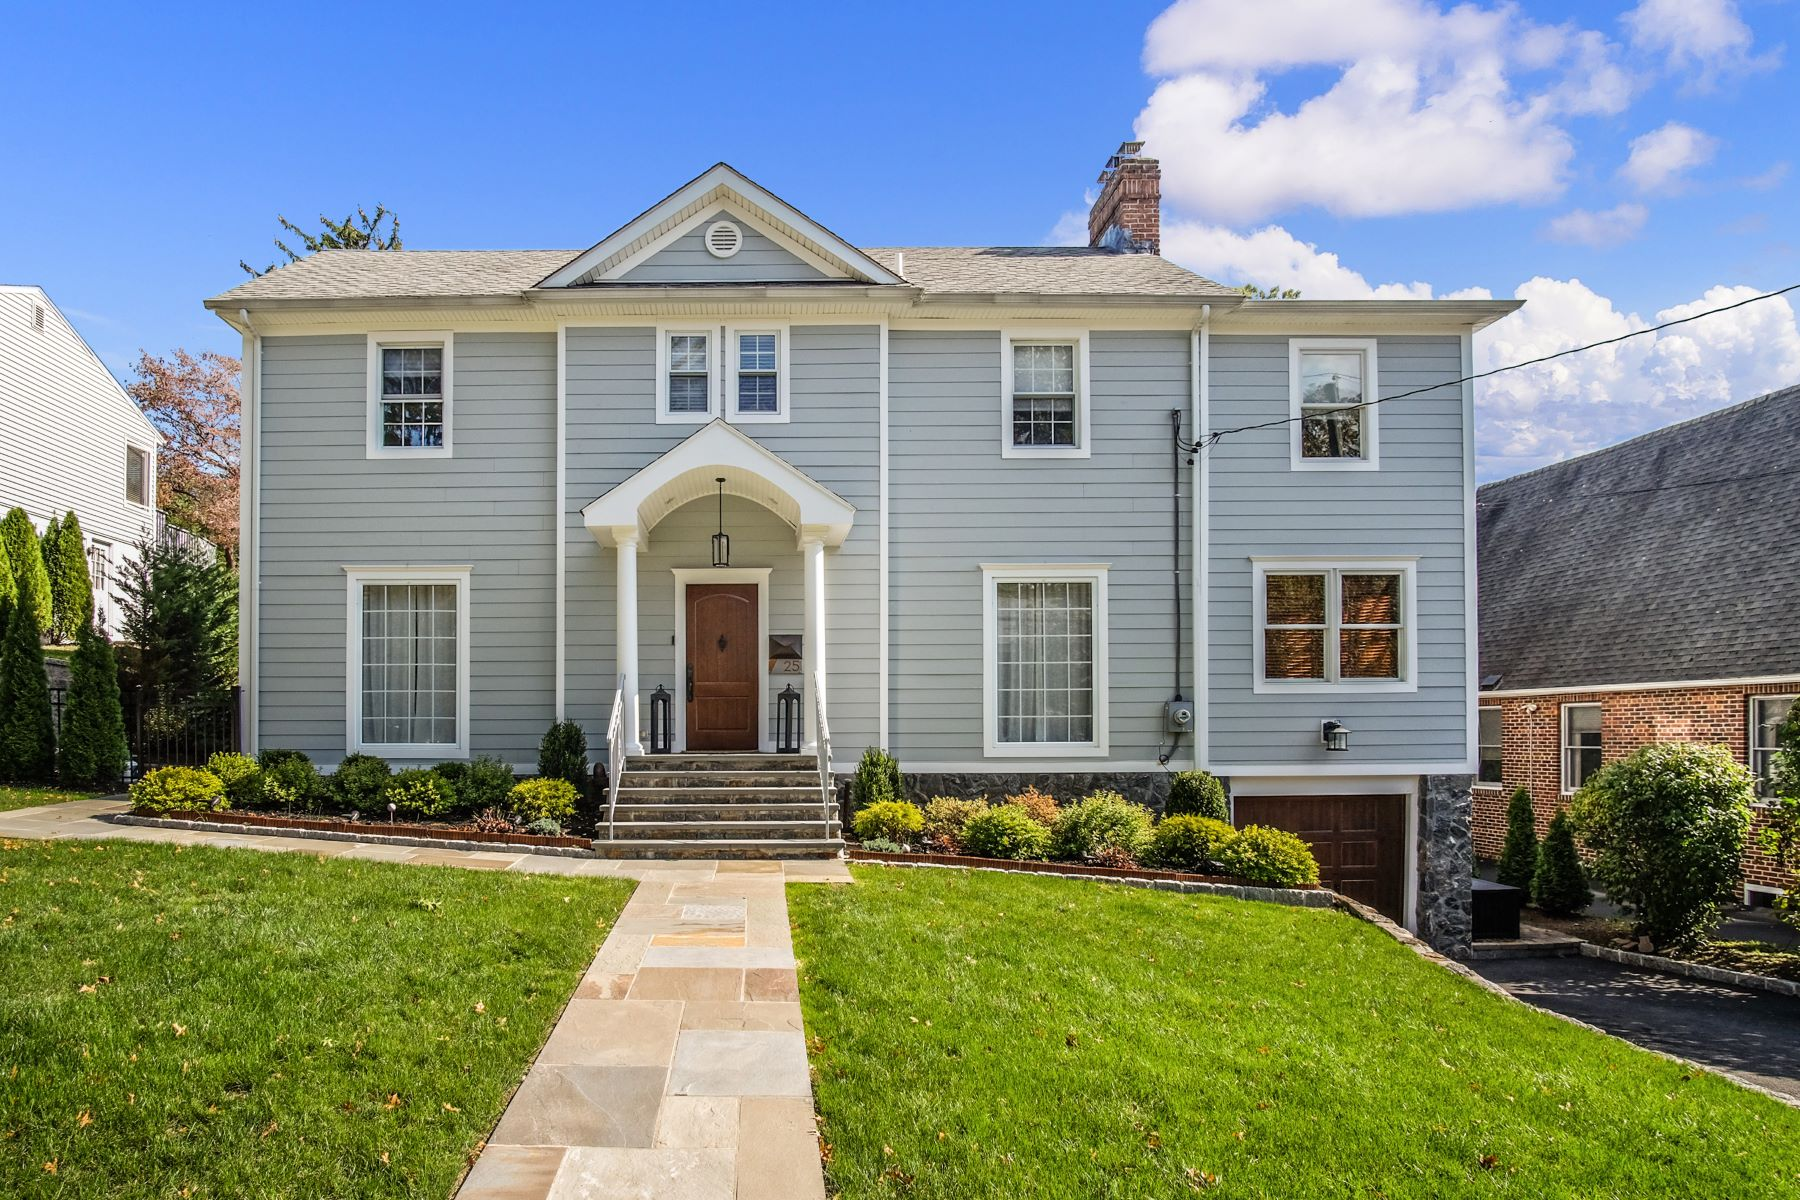 Single Family Homes for Active at 25 Wilson Drive New Rochelle, New York 10801 United States